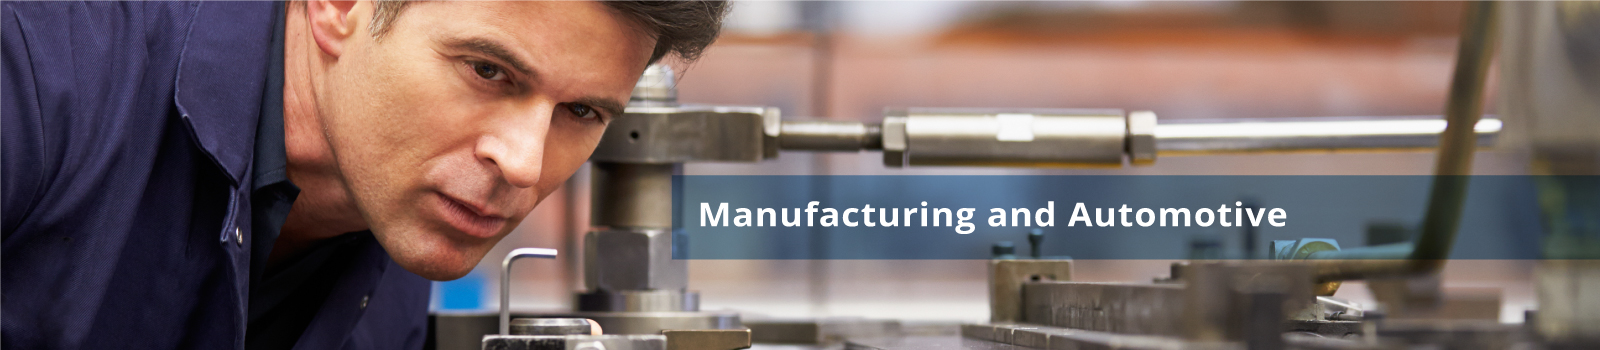 Manufacturing and Automotive